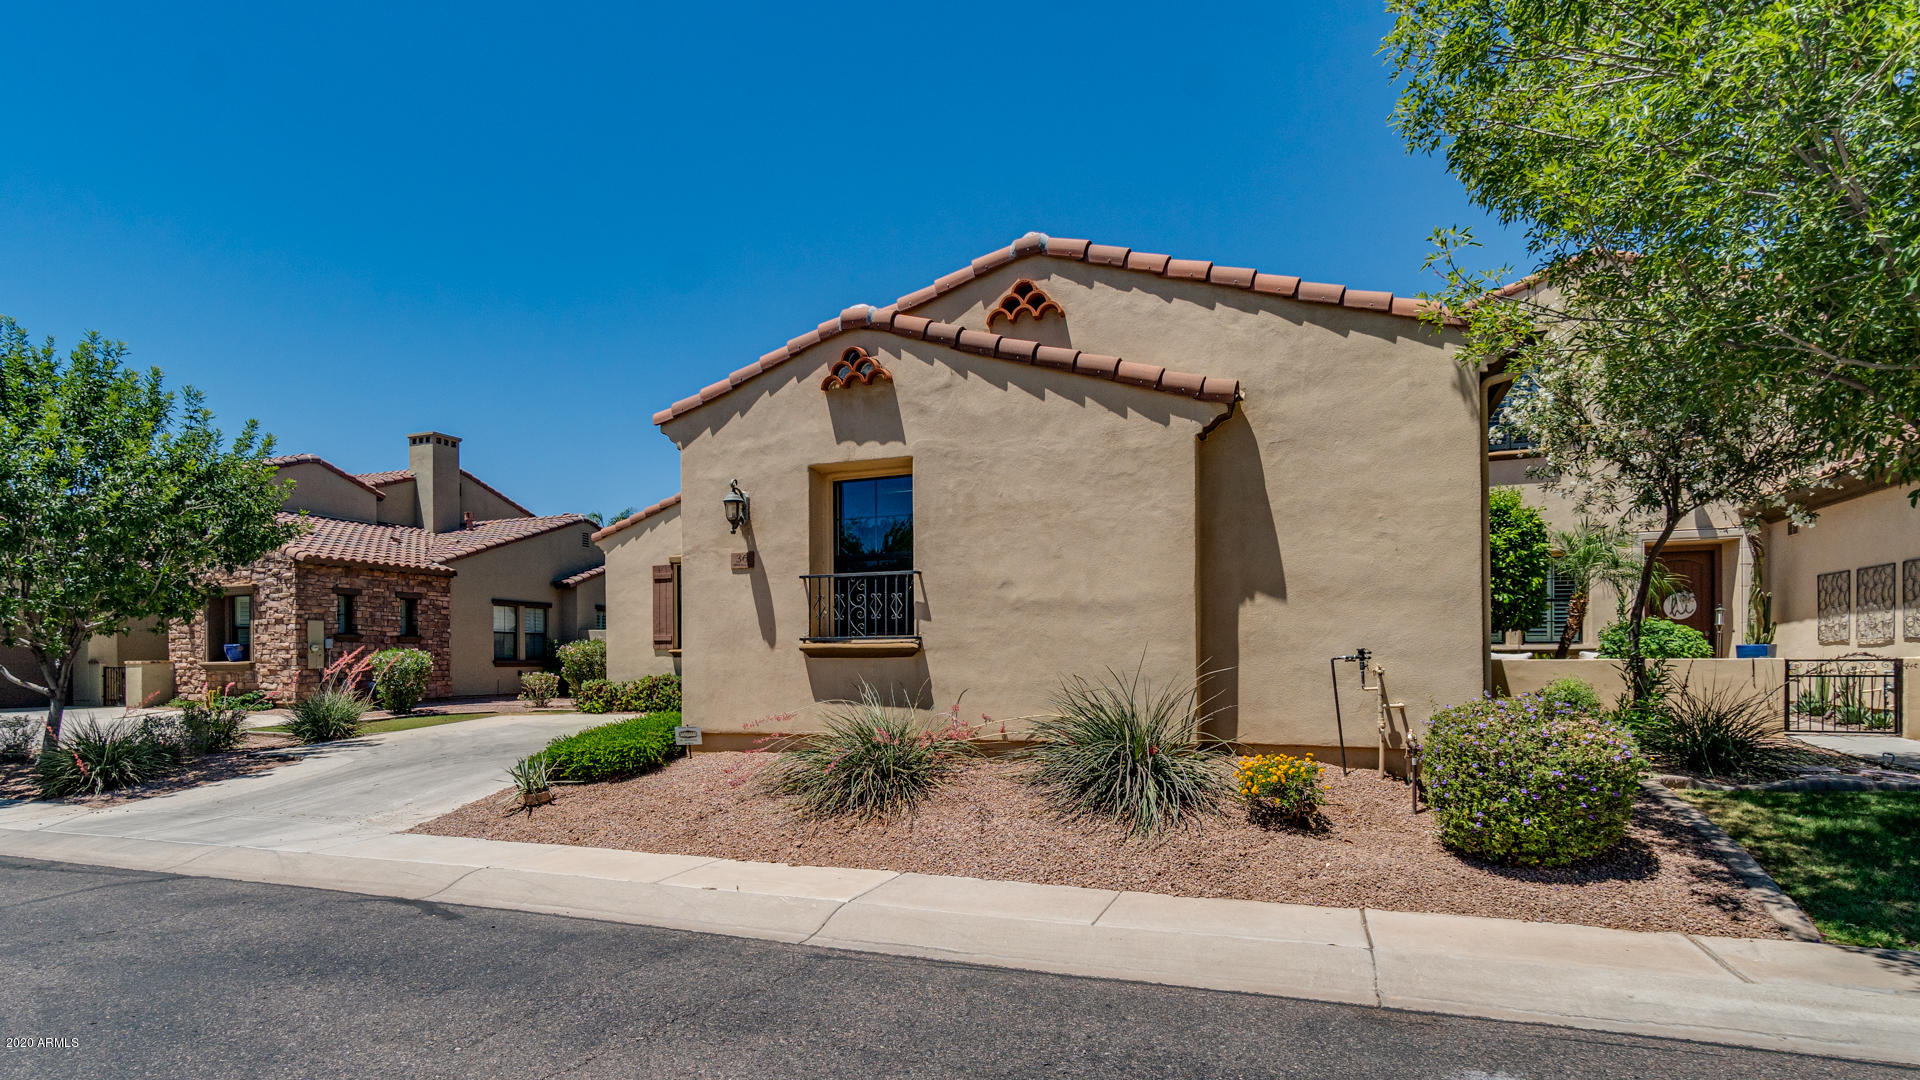 MLS 6082314 4700 S FULTON RANCH Boulevard Unit 36, Chandler, AZ 85248 Chandler AZ Fulton Ranch